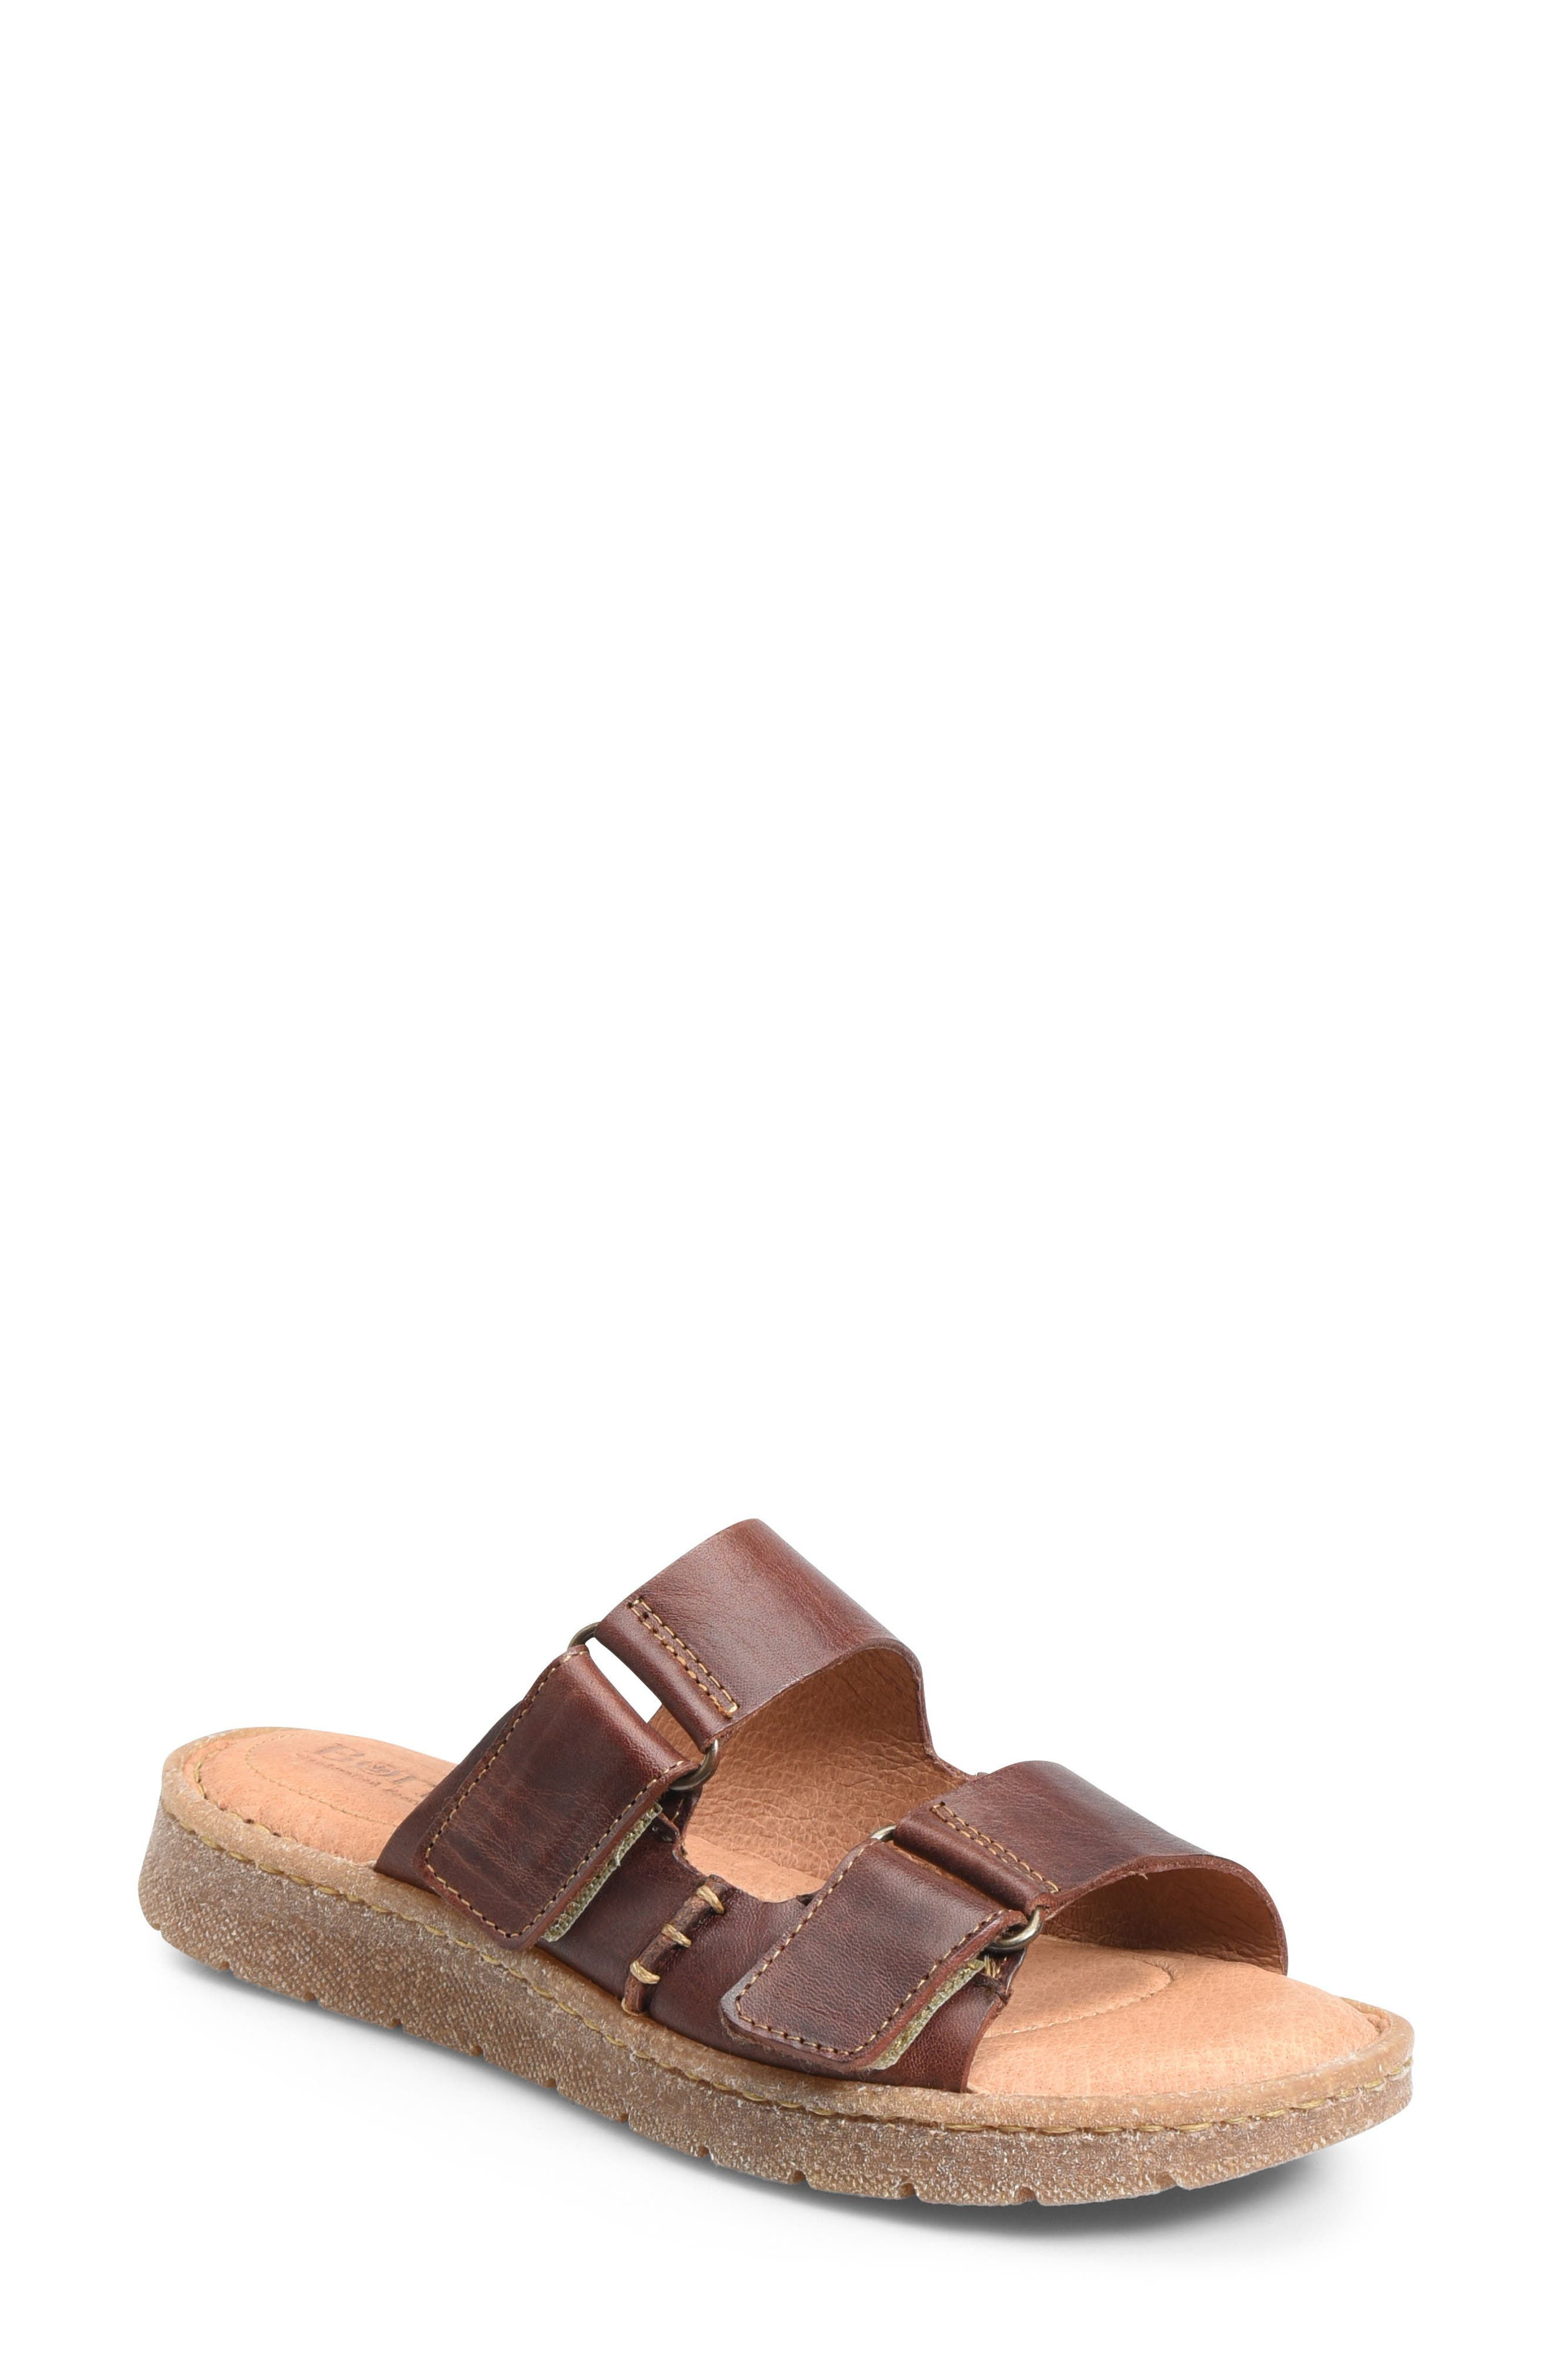 Dominica Sandal,                         Main,                         color, Rust Leather